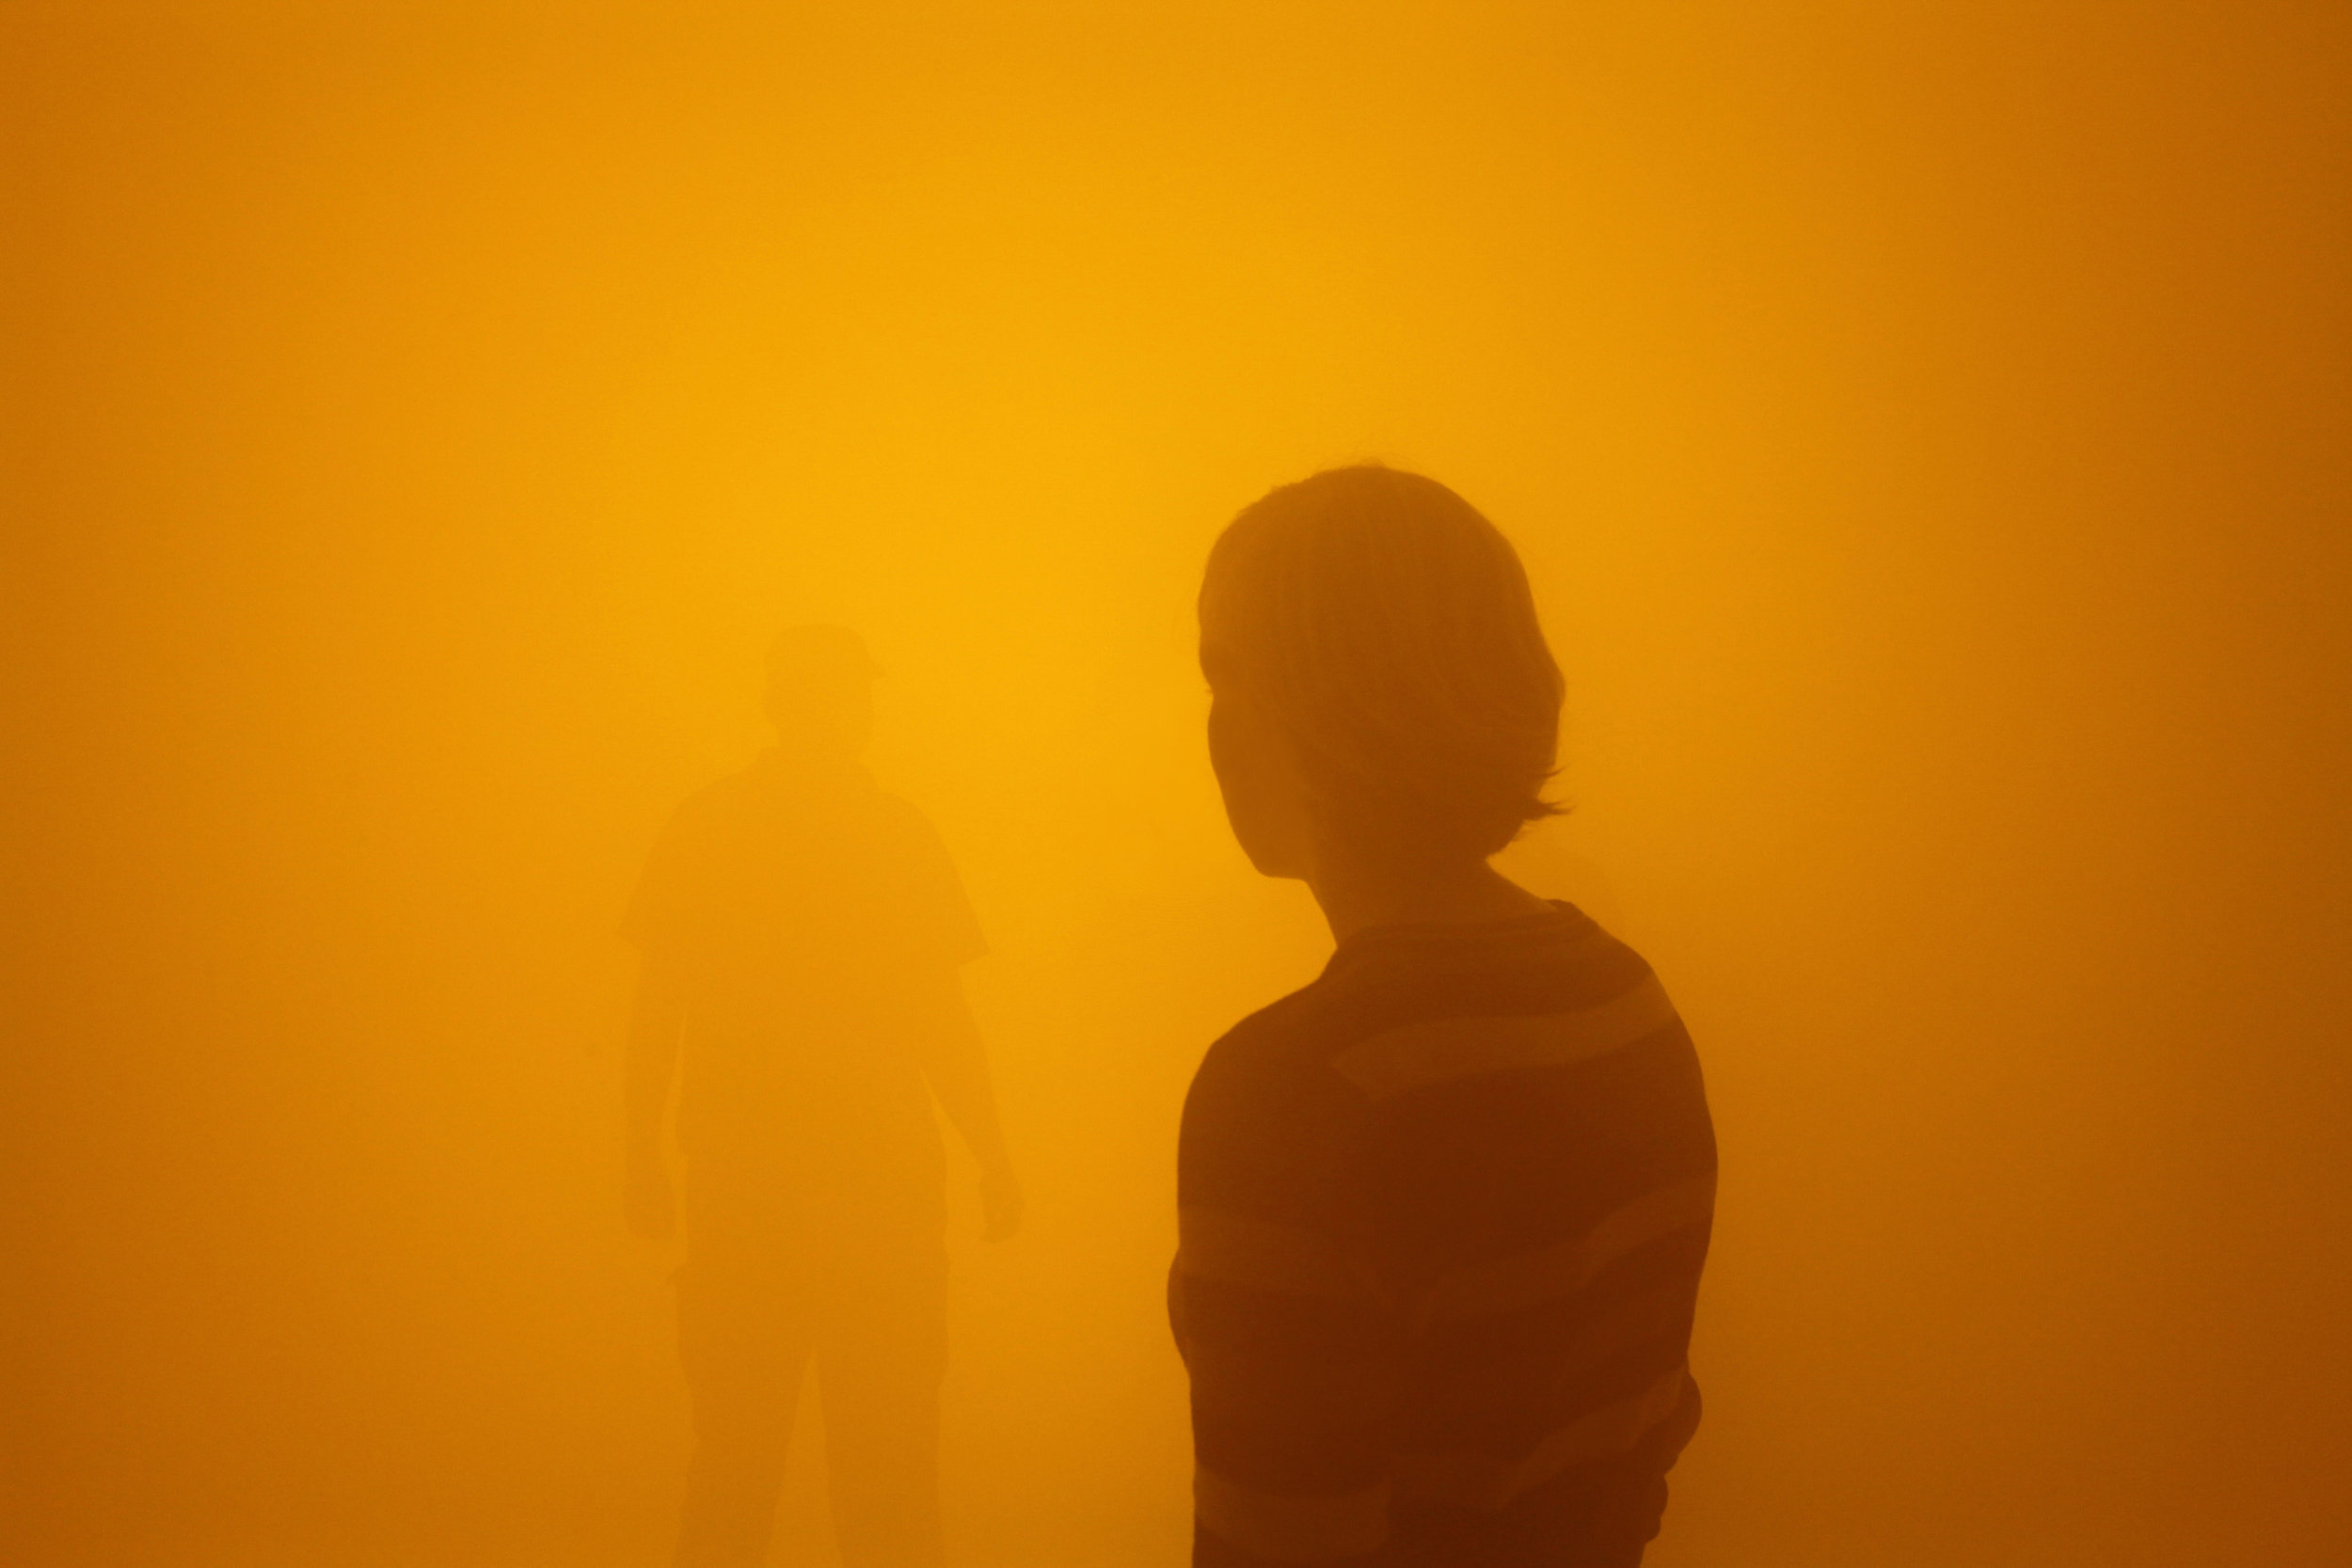 Olafur Eliasson (b.1967)   Din blinde passager  (Your blind passenger) 2010 Fluorescent lamps, monofrequency lamps, fog machine, ventilator, wood, aluminium, steel, fabric, plastic sheet Dimensions variable Installation view at ARKEN Museum of Modern Art, Copenhagen, 2010 Photo: Thilo Frank / Studio Olafur Eliasson Courtesy of the artist; neugerriemschneider, Berlin; Tanya Bonakdar Gallery, New York / Los Angeles © 2010 Olafur Eliasson